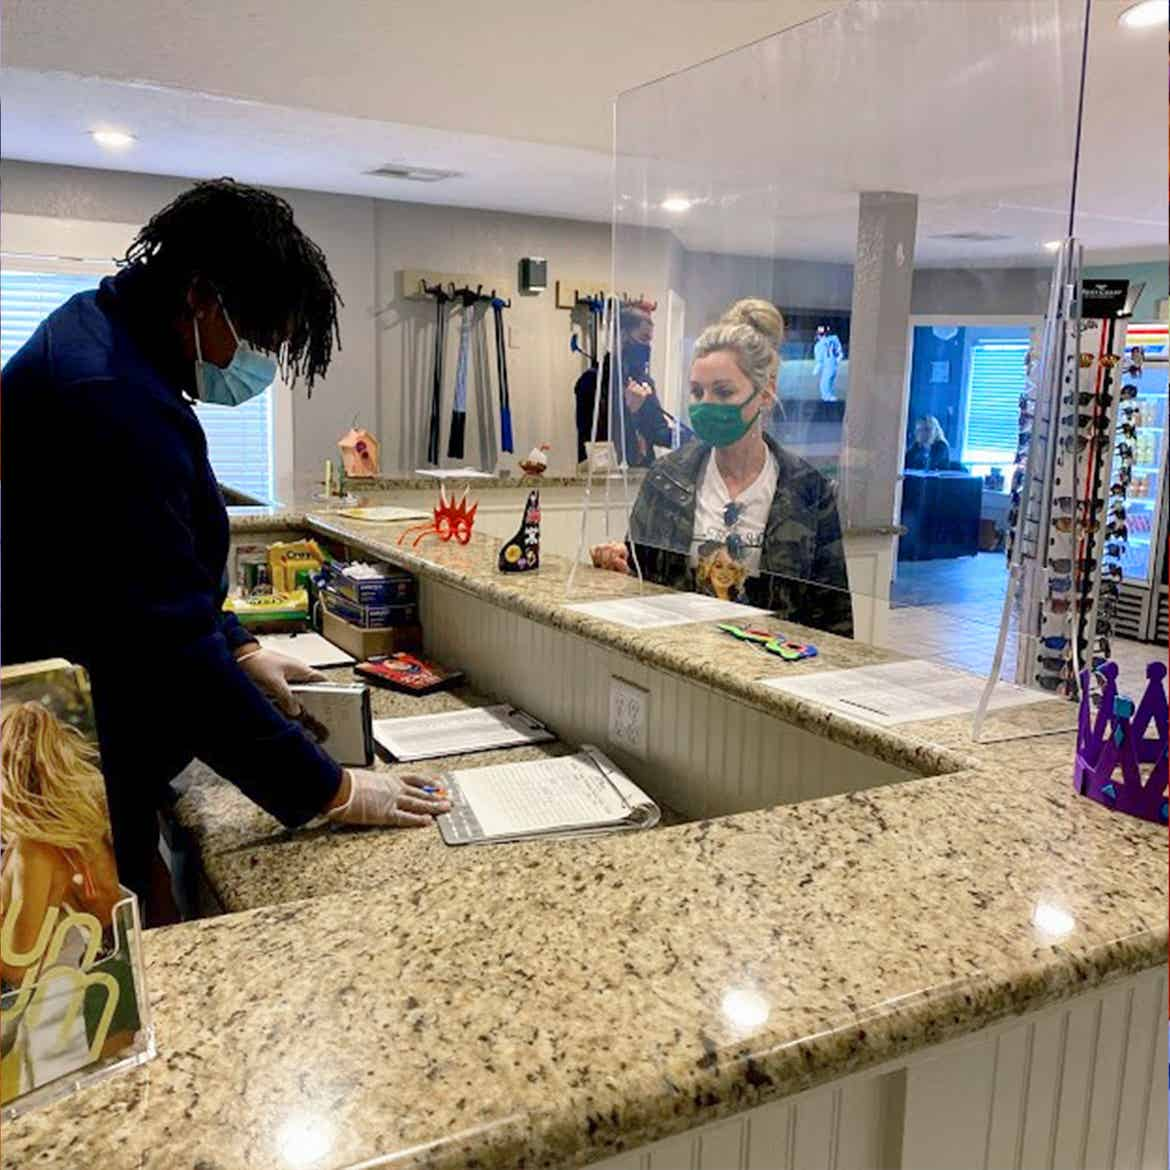 A Team Member assists Amanda with mini-golf equipment rentals while both wear a mask behind plexiglass at our Galveston Beach Resort.